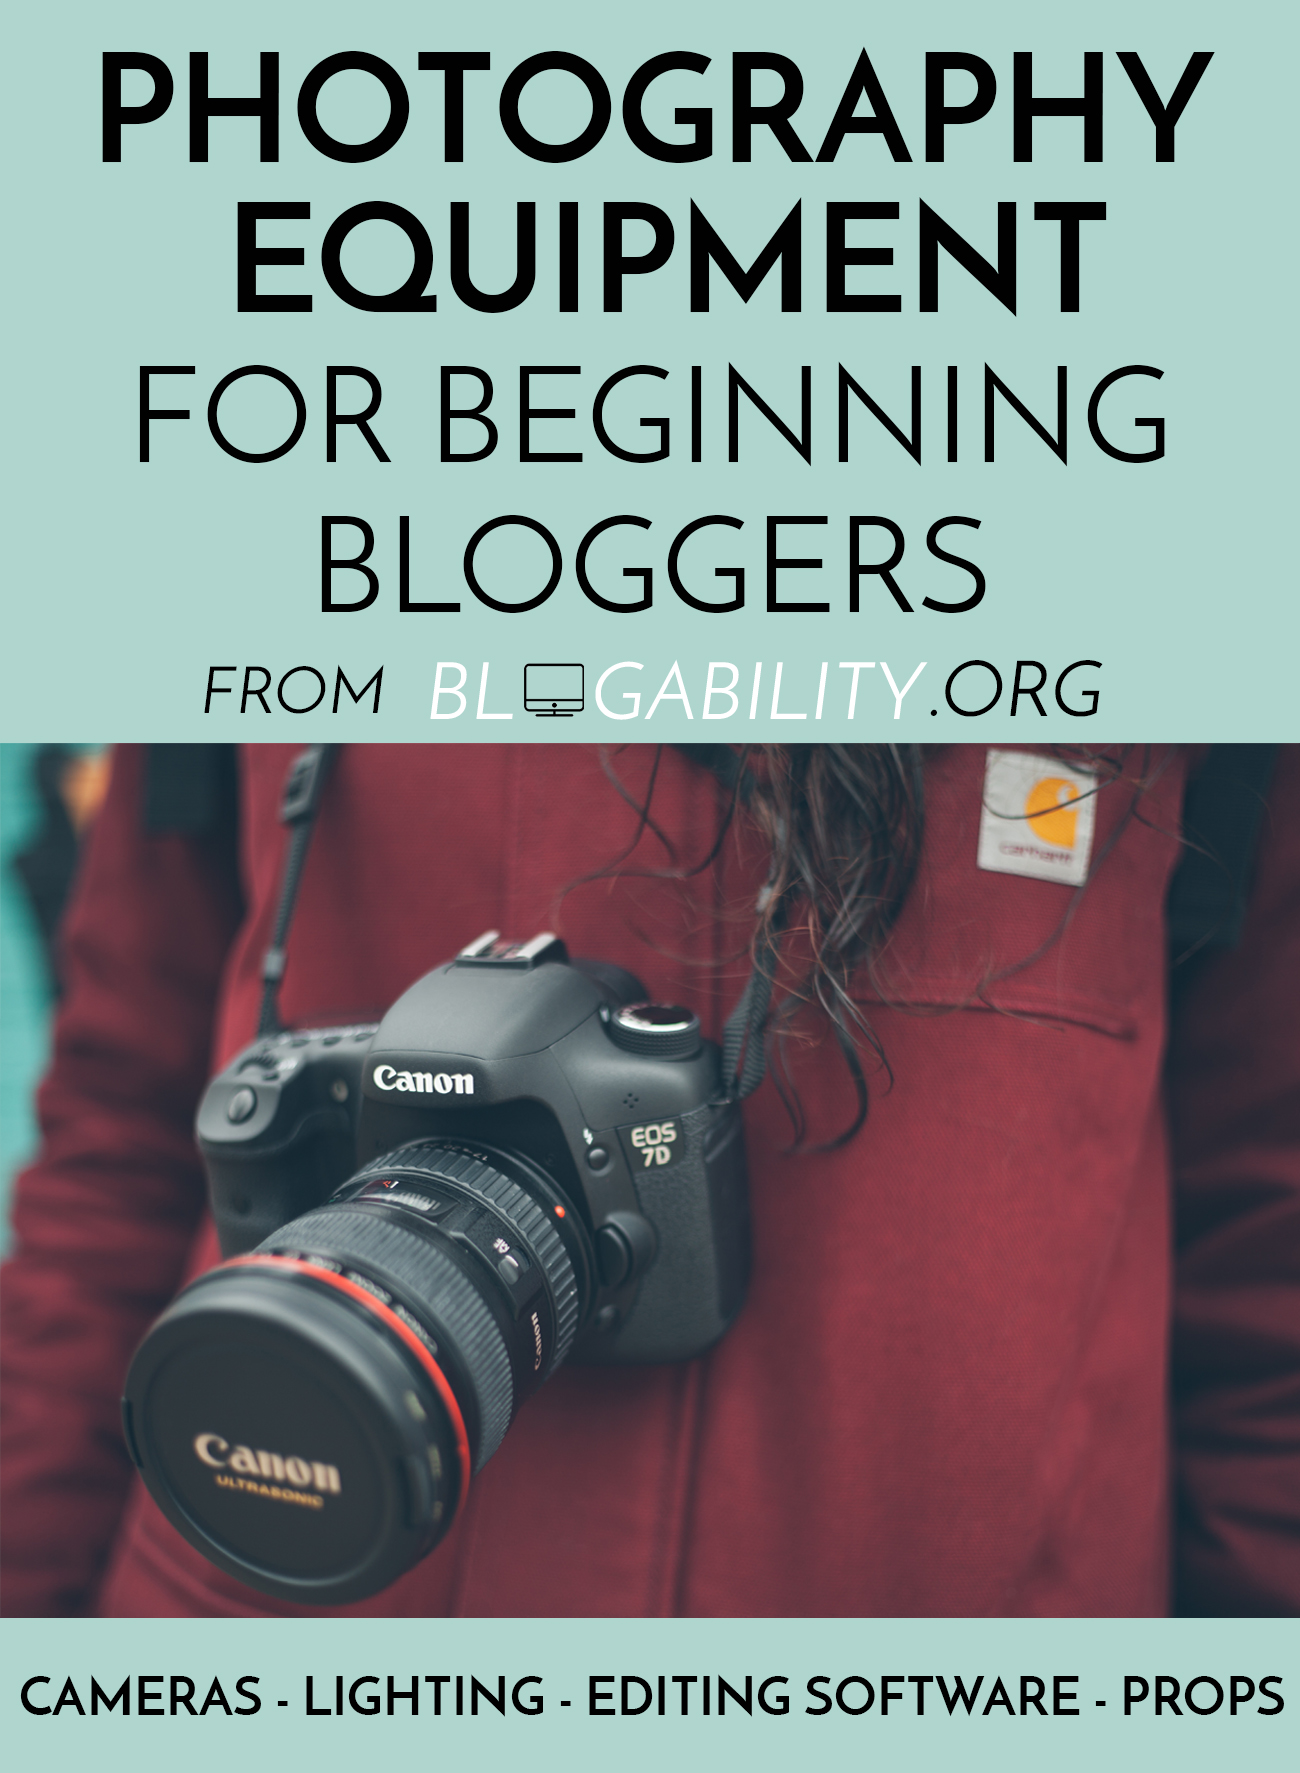 Great resource for beginners who don't know where to start with their first DSLR purchase. Really smart and affordable prop ideas too that I never would have thought of!